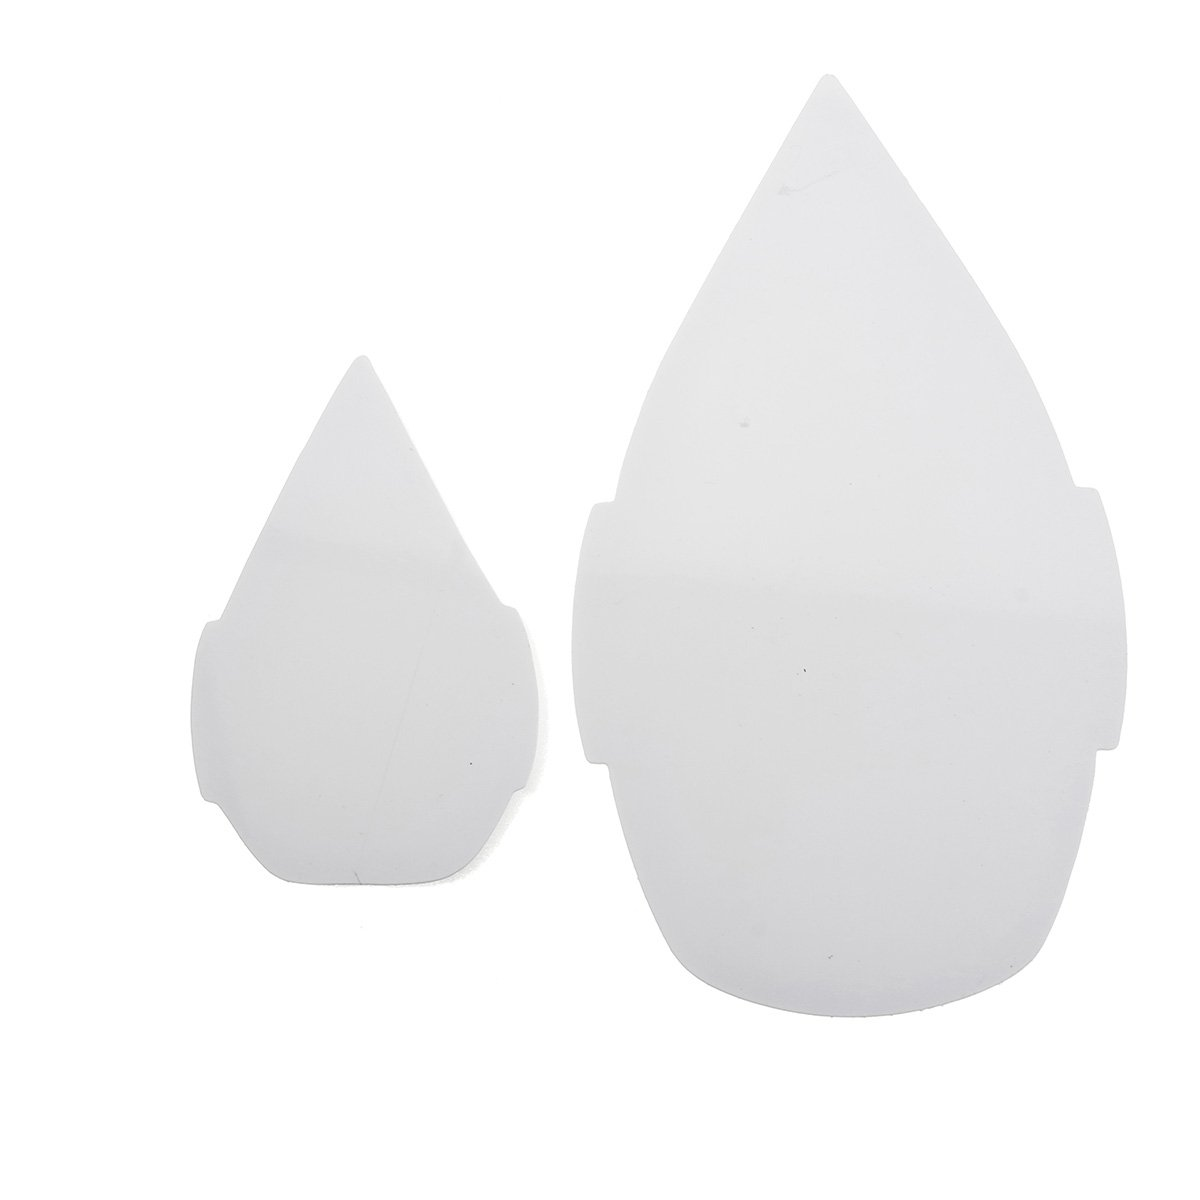 Jeteven Paint Pad Kit Replacement Extra 2 Pads (1 Large and 1 Small) JETEVEN1424